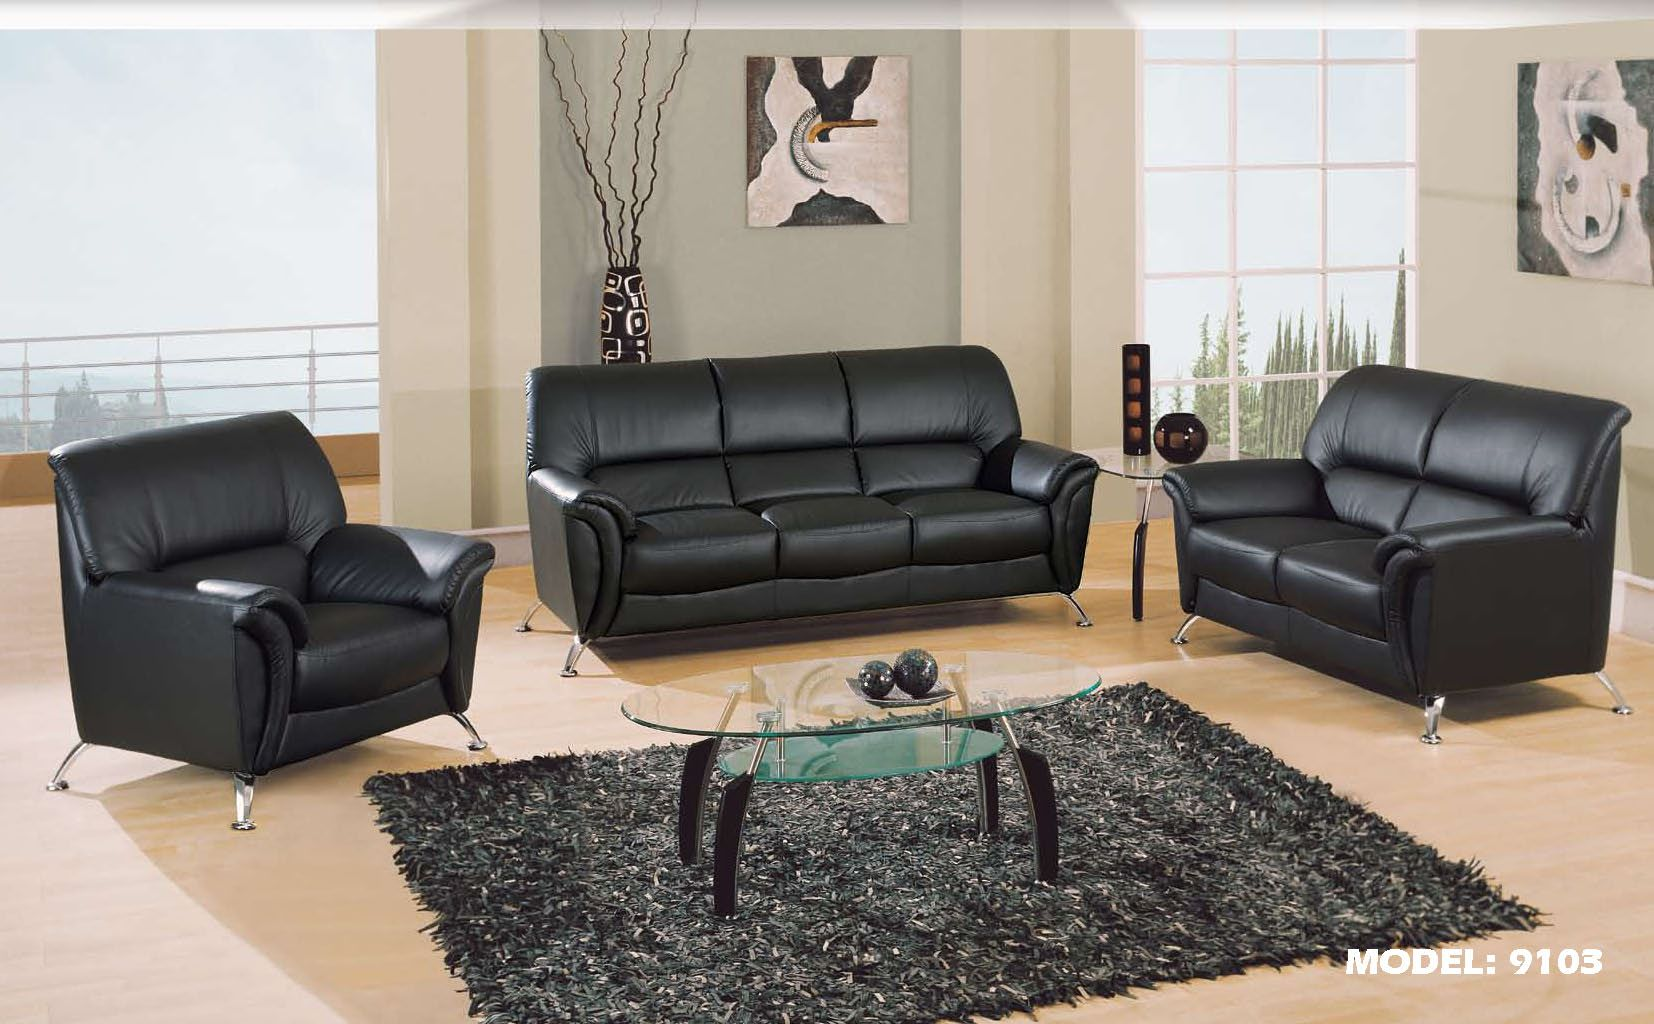 Images of sofa set designs google search sofa for Living room ideas with black leather sofa